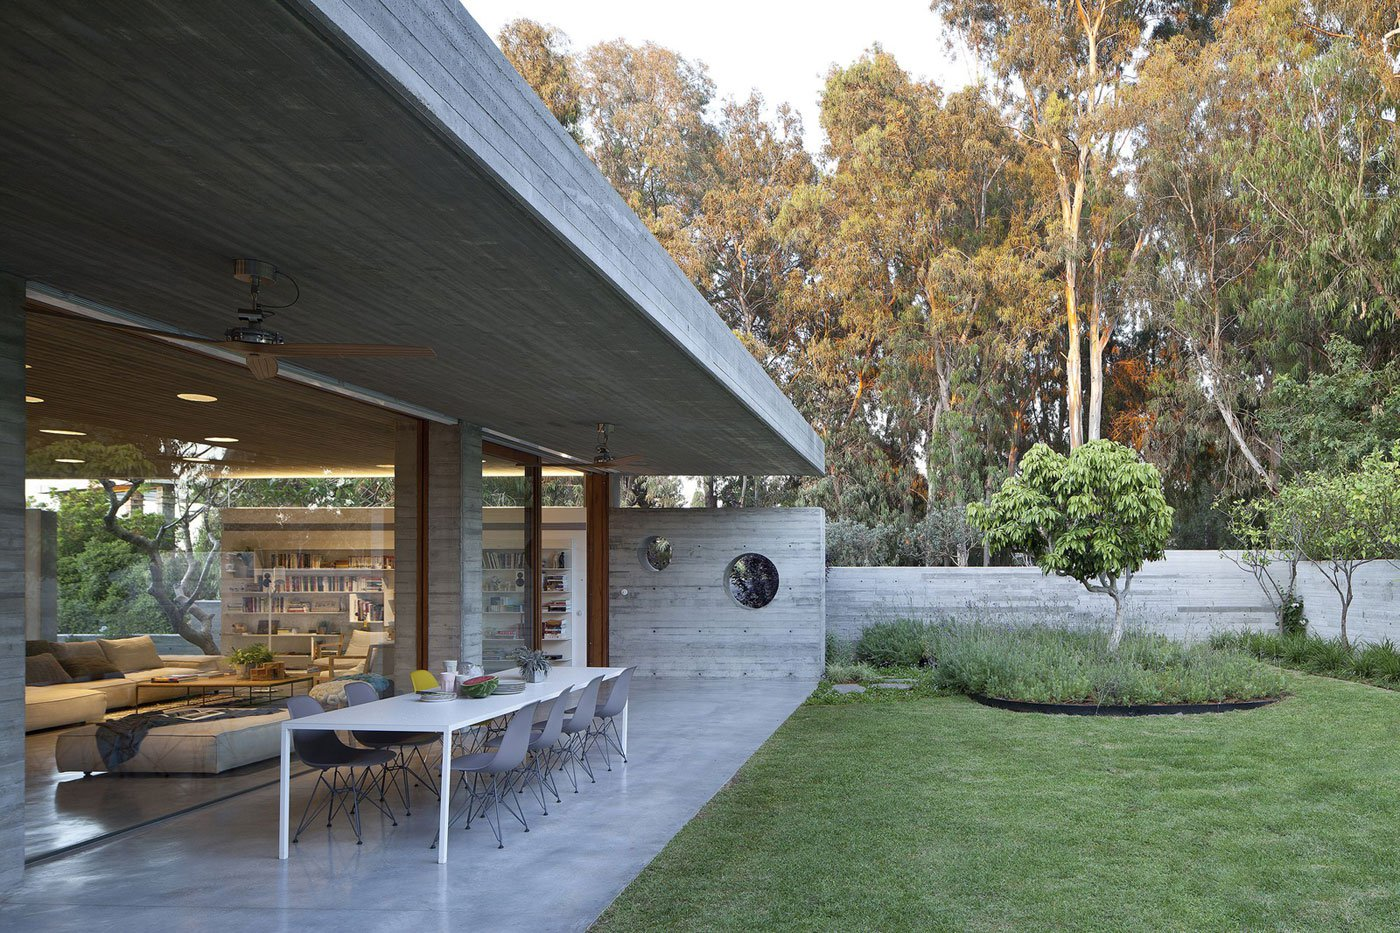 A-House-for-an-Architect-06